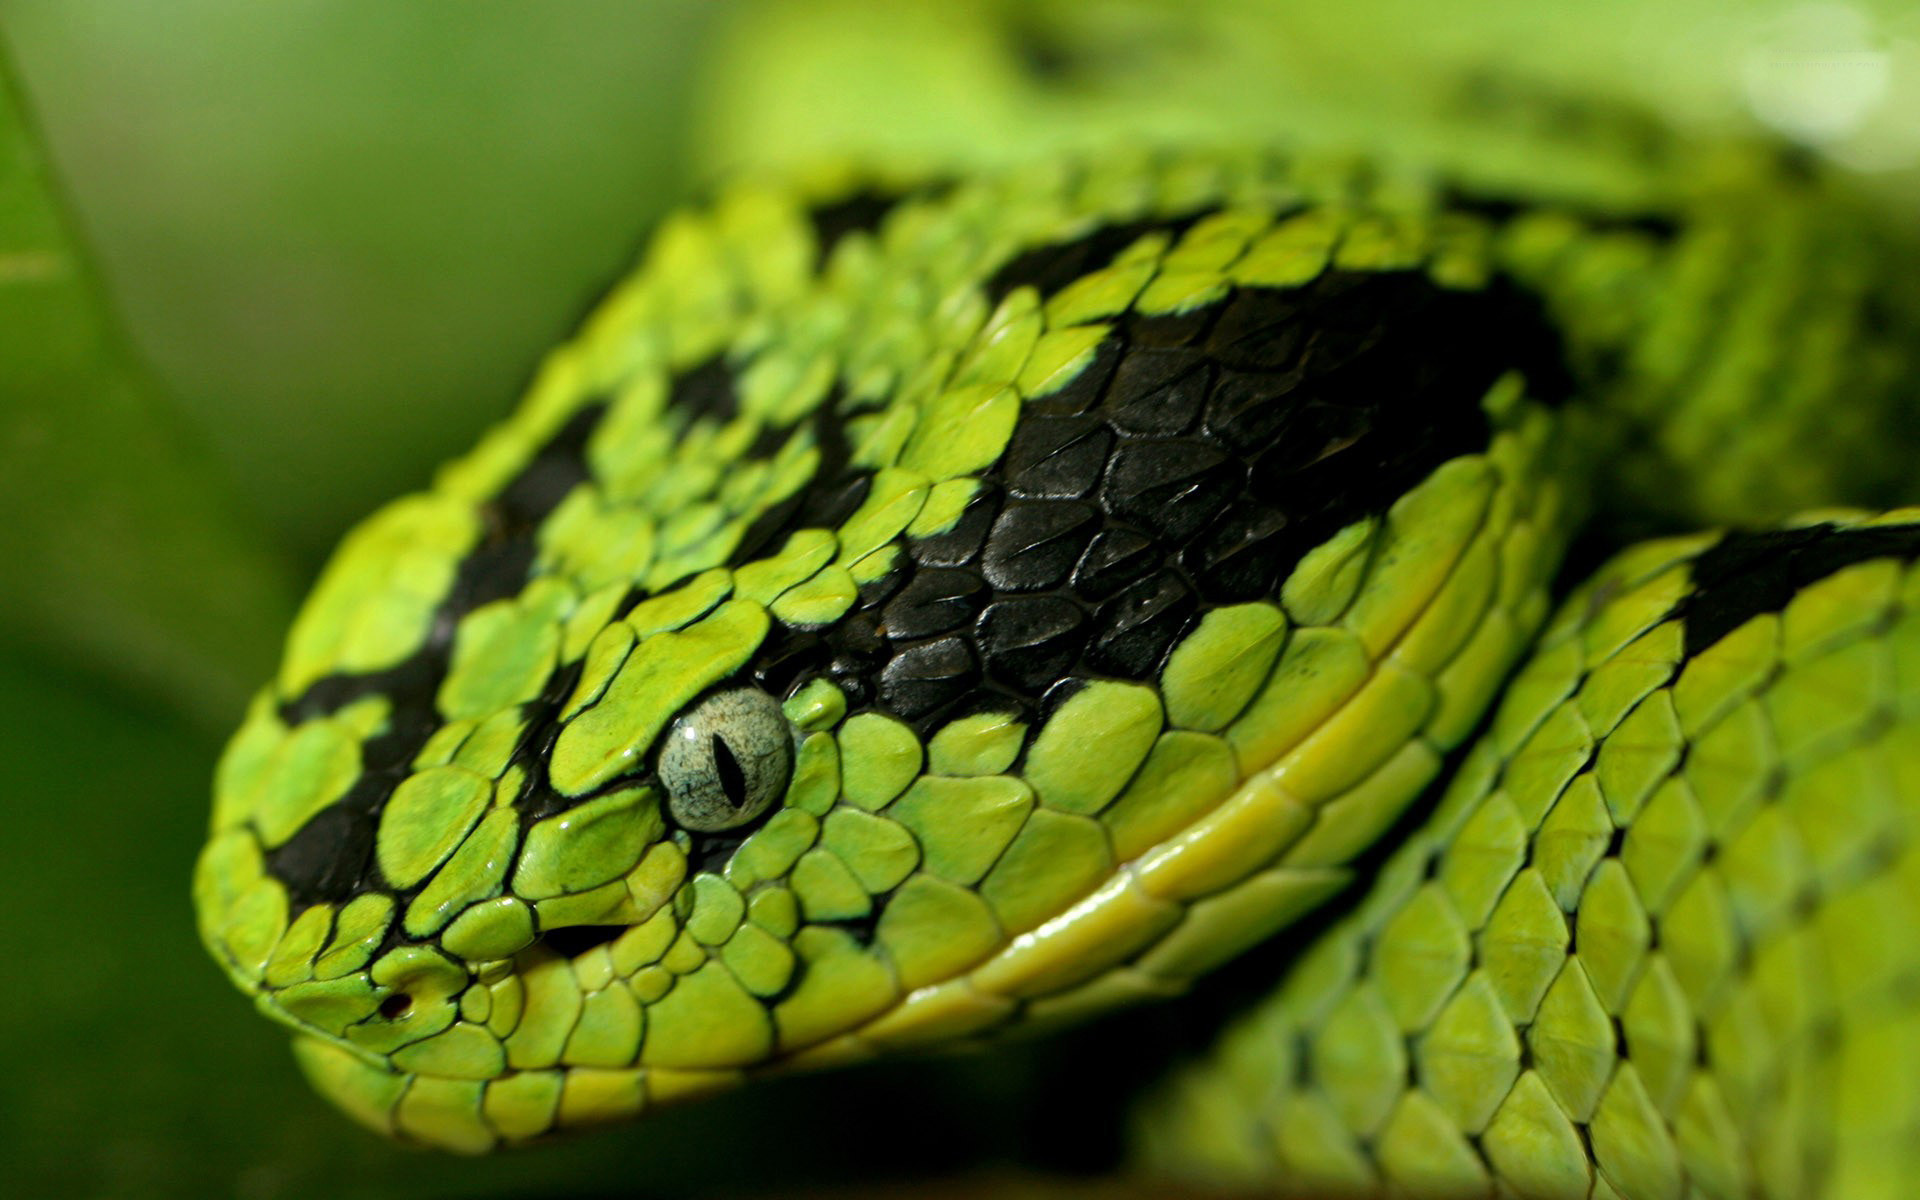 1920x1200 Snake Wallpaper : HD Wallpaper, Background Wallpaper